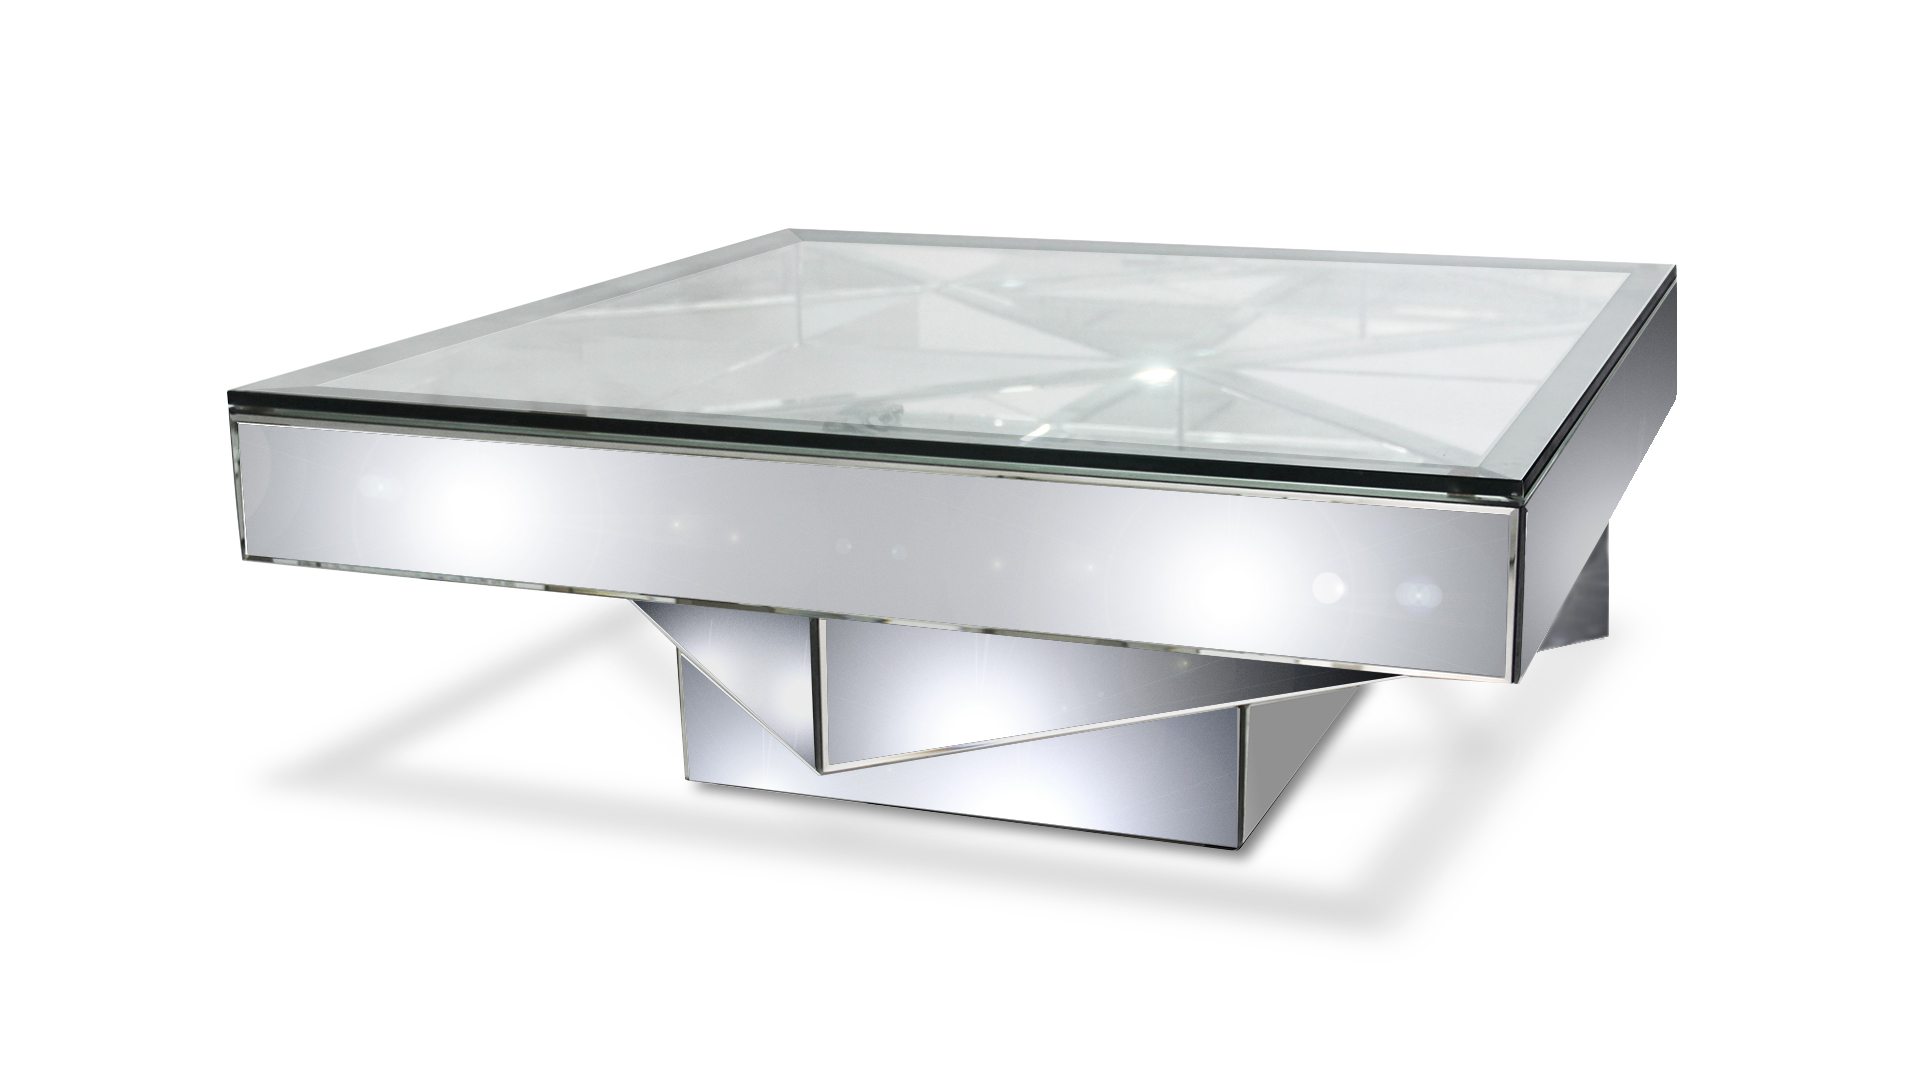 Table basse en verre miroir meuble de salon lilas - Ikea table basse verre ...